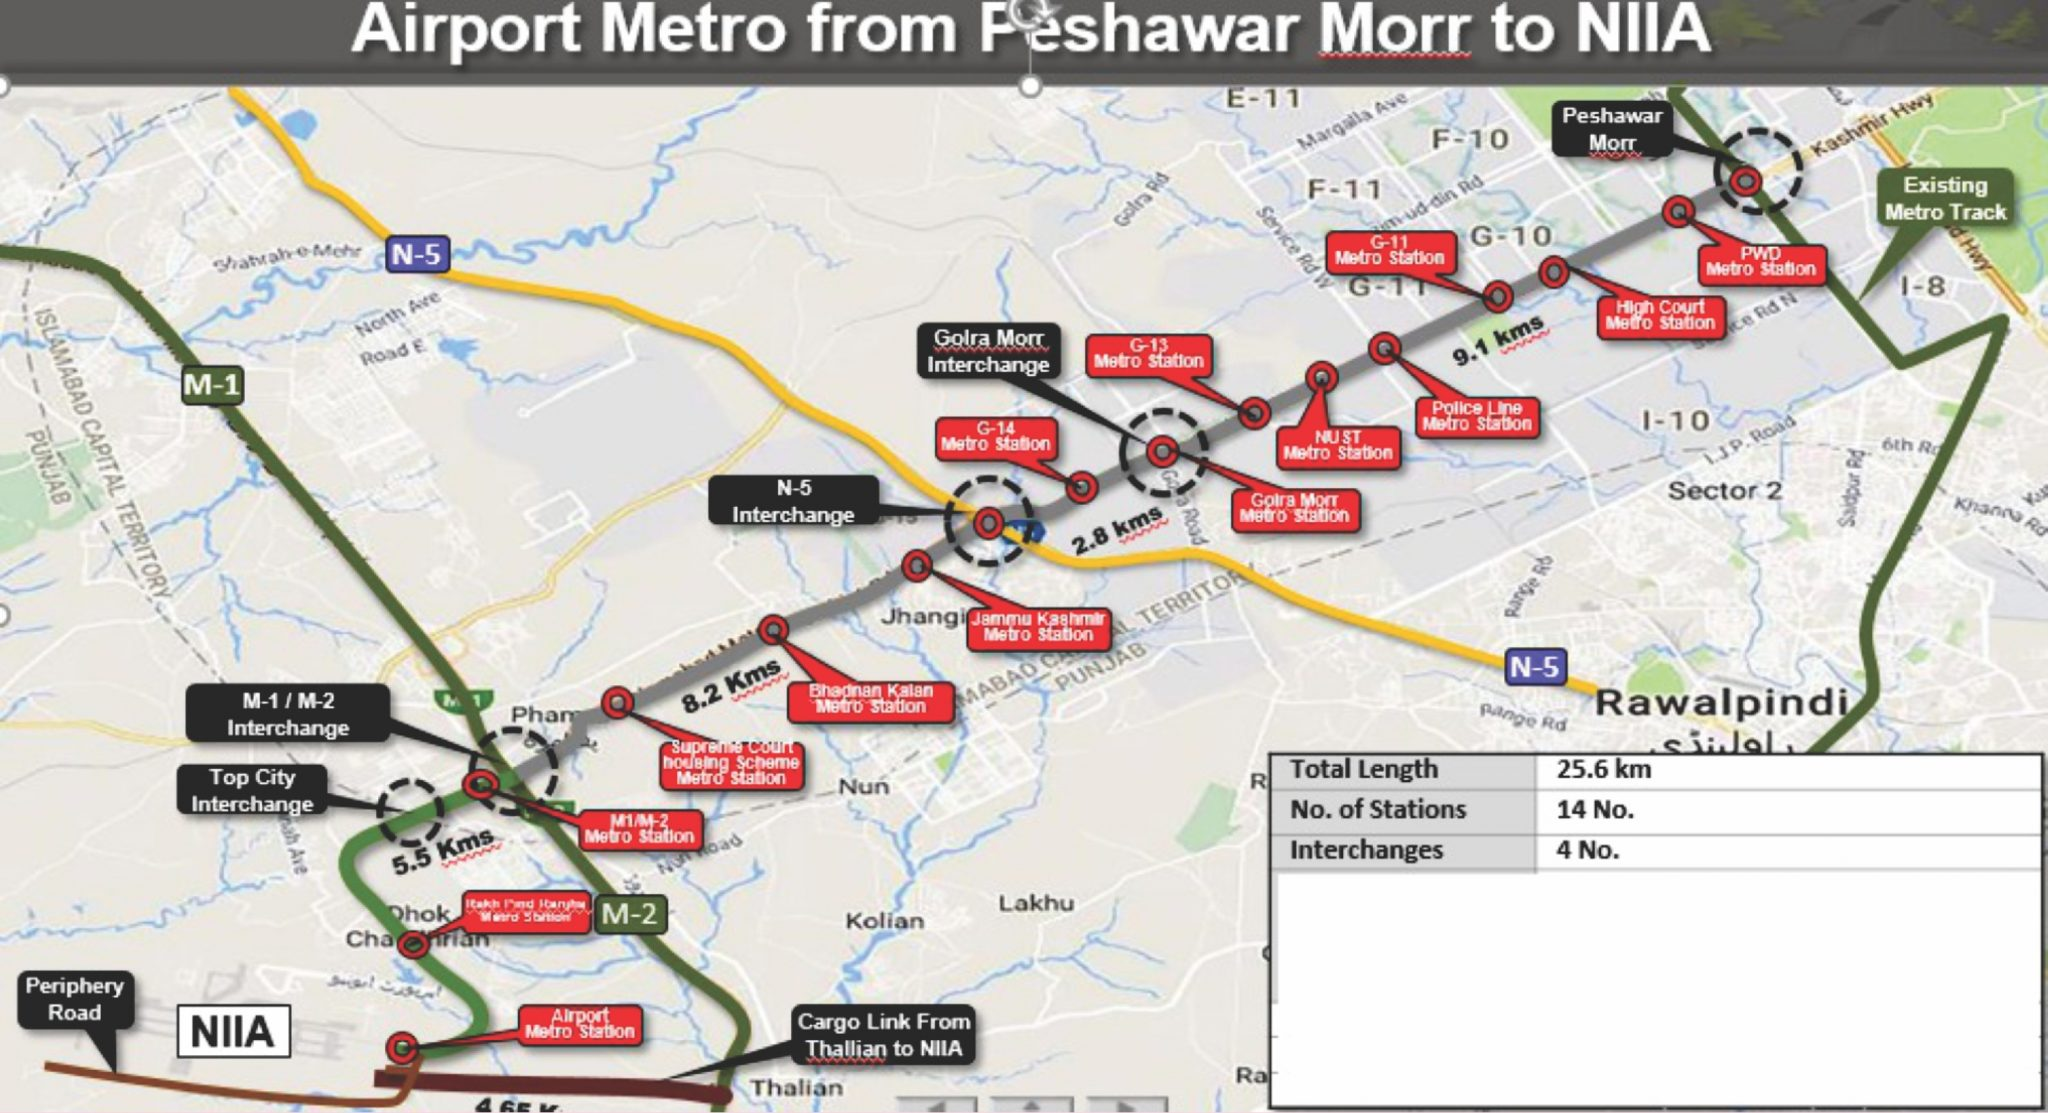 New Airport Metro Route